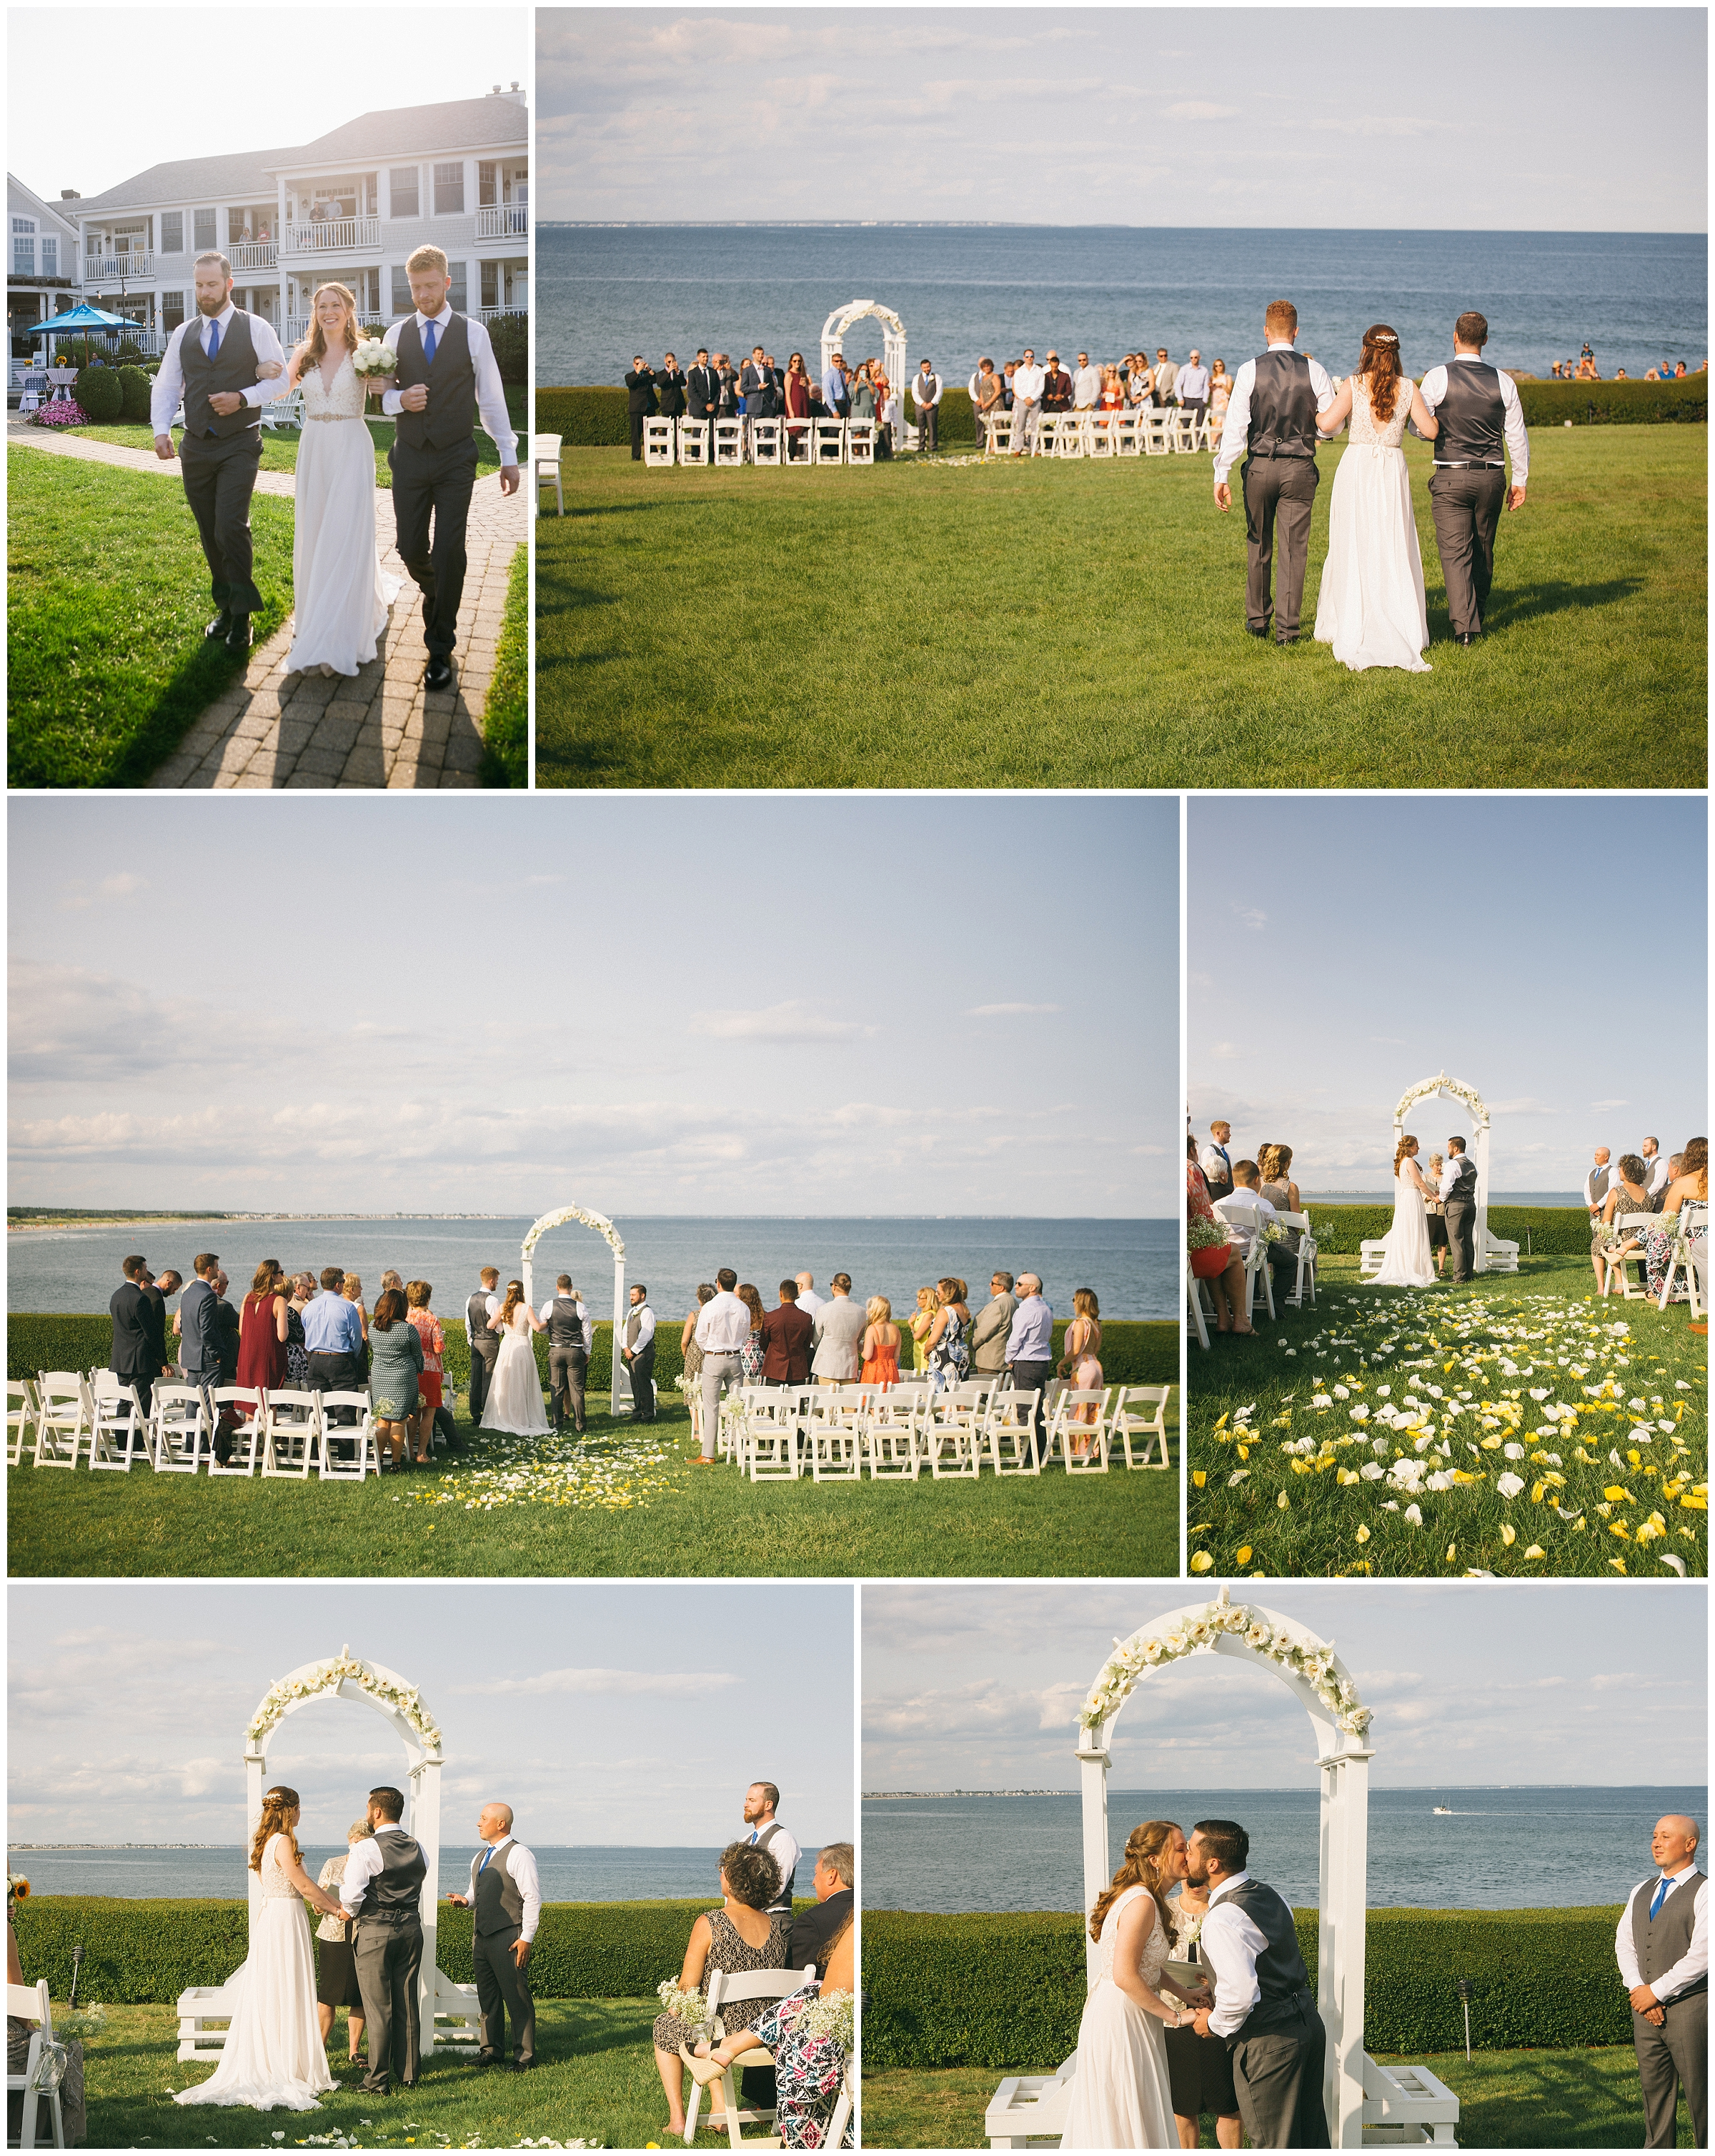 A wedding ceremony against the Atlantic Ocean at the Beachmere Inn in Ogunquit Maine. Photography by Boston Wedding Photographer, Ryan Richardson Photography.